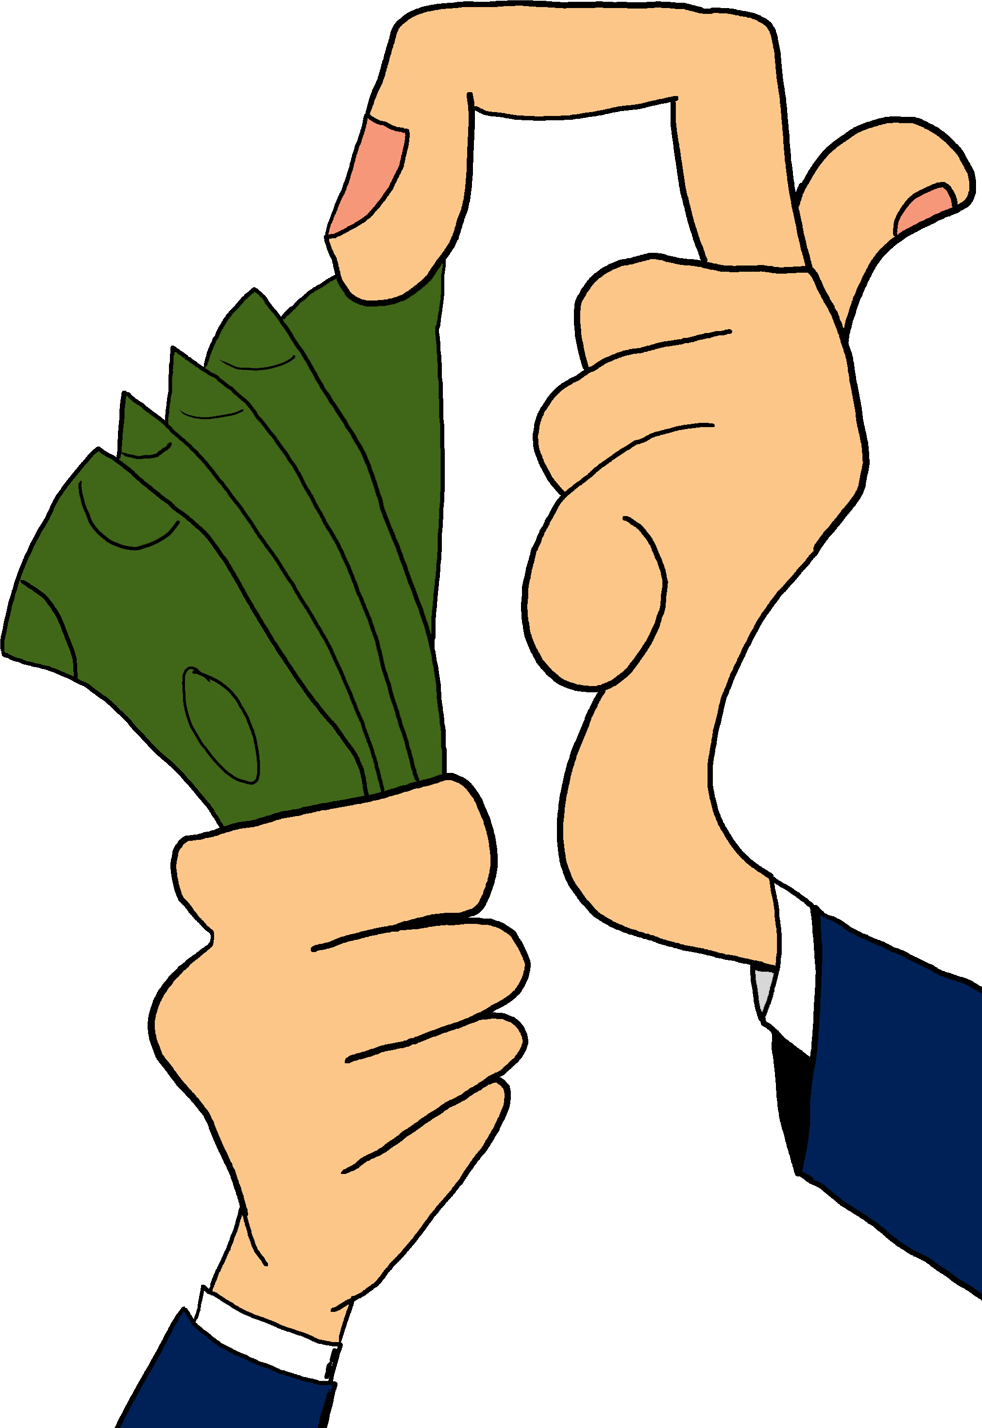 Free animated clipart download. Money cartoon png